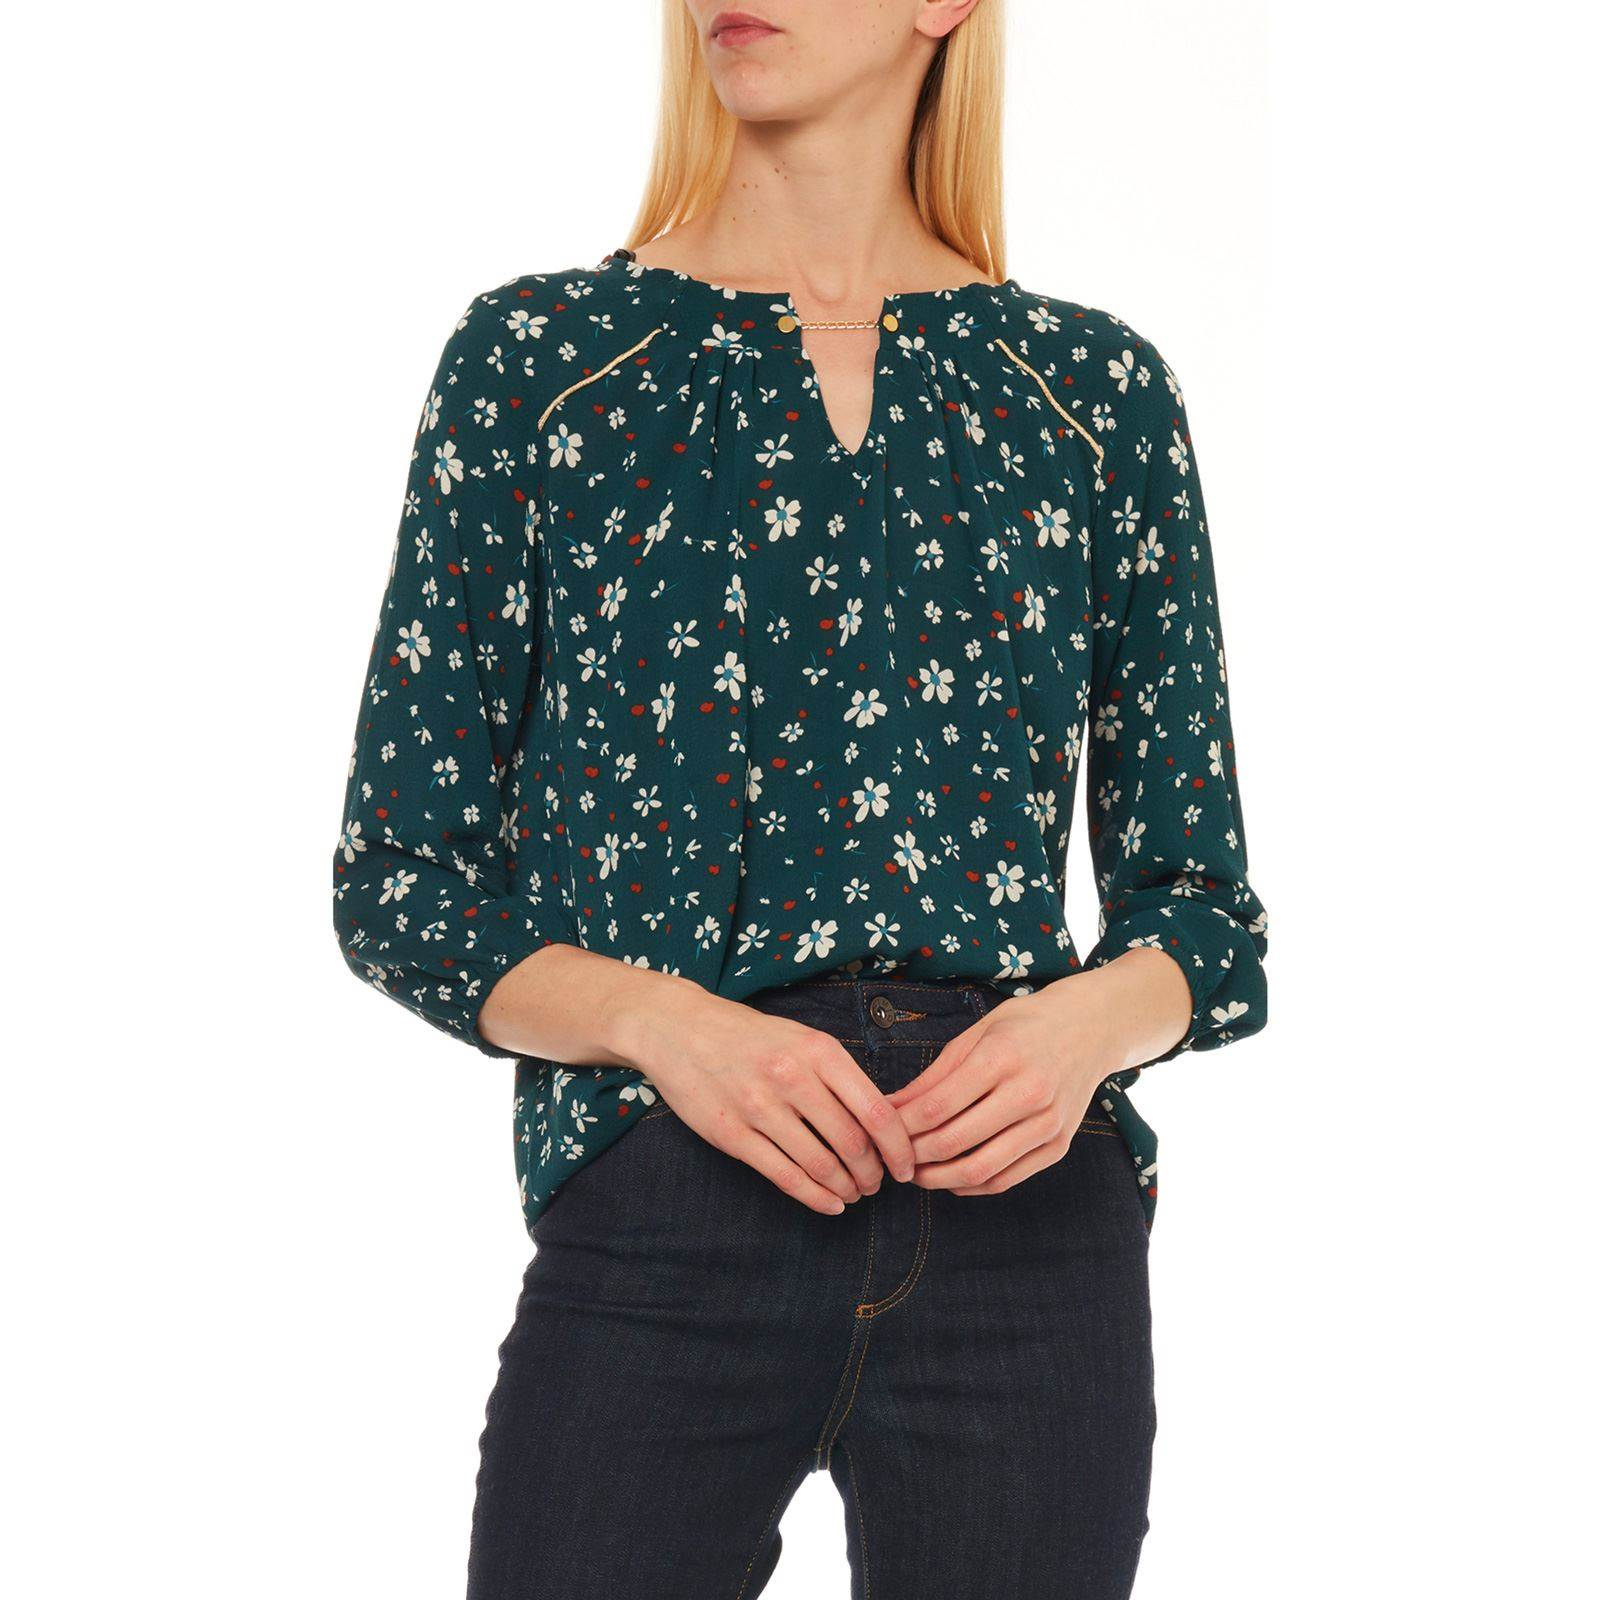 Etam Femme BlouseVert V Femme BlouseVert Etam f6vYb7gy